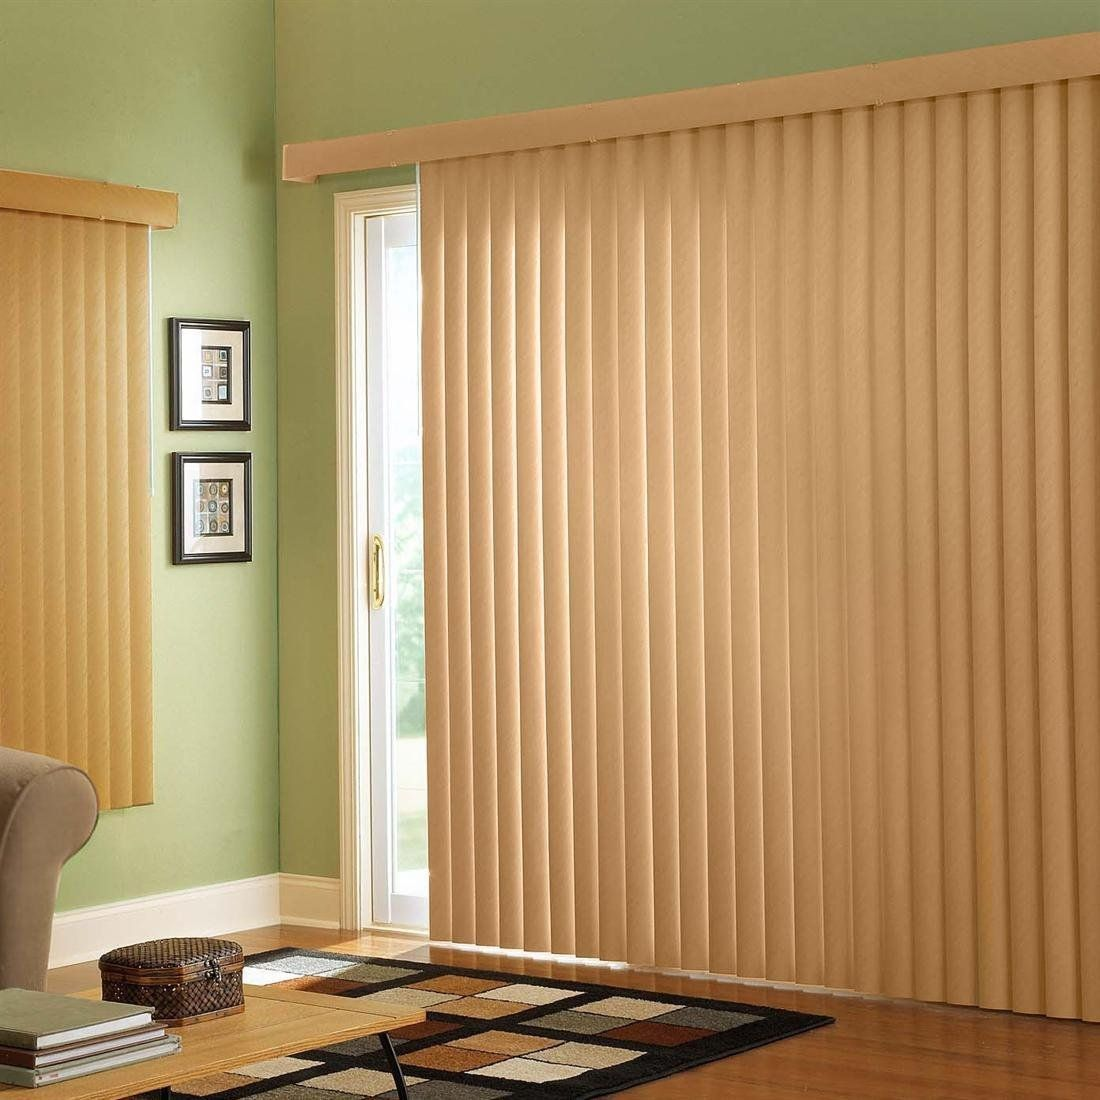 Sliding patio door curtains blinds bukuweb pinterest